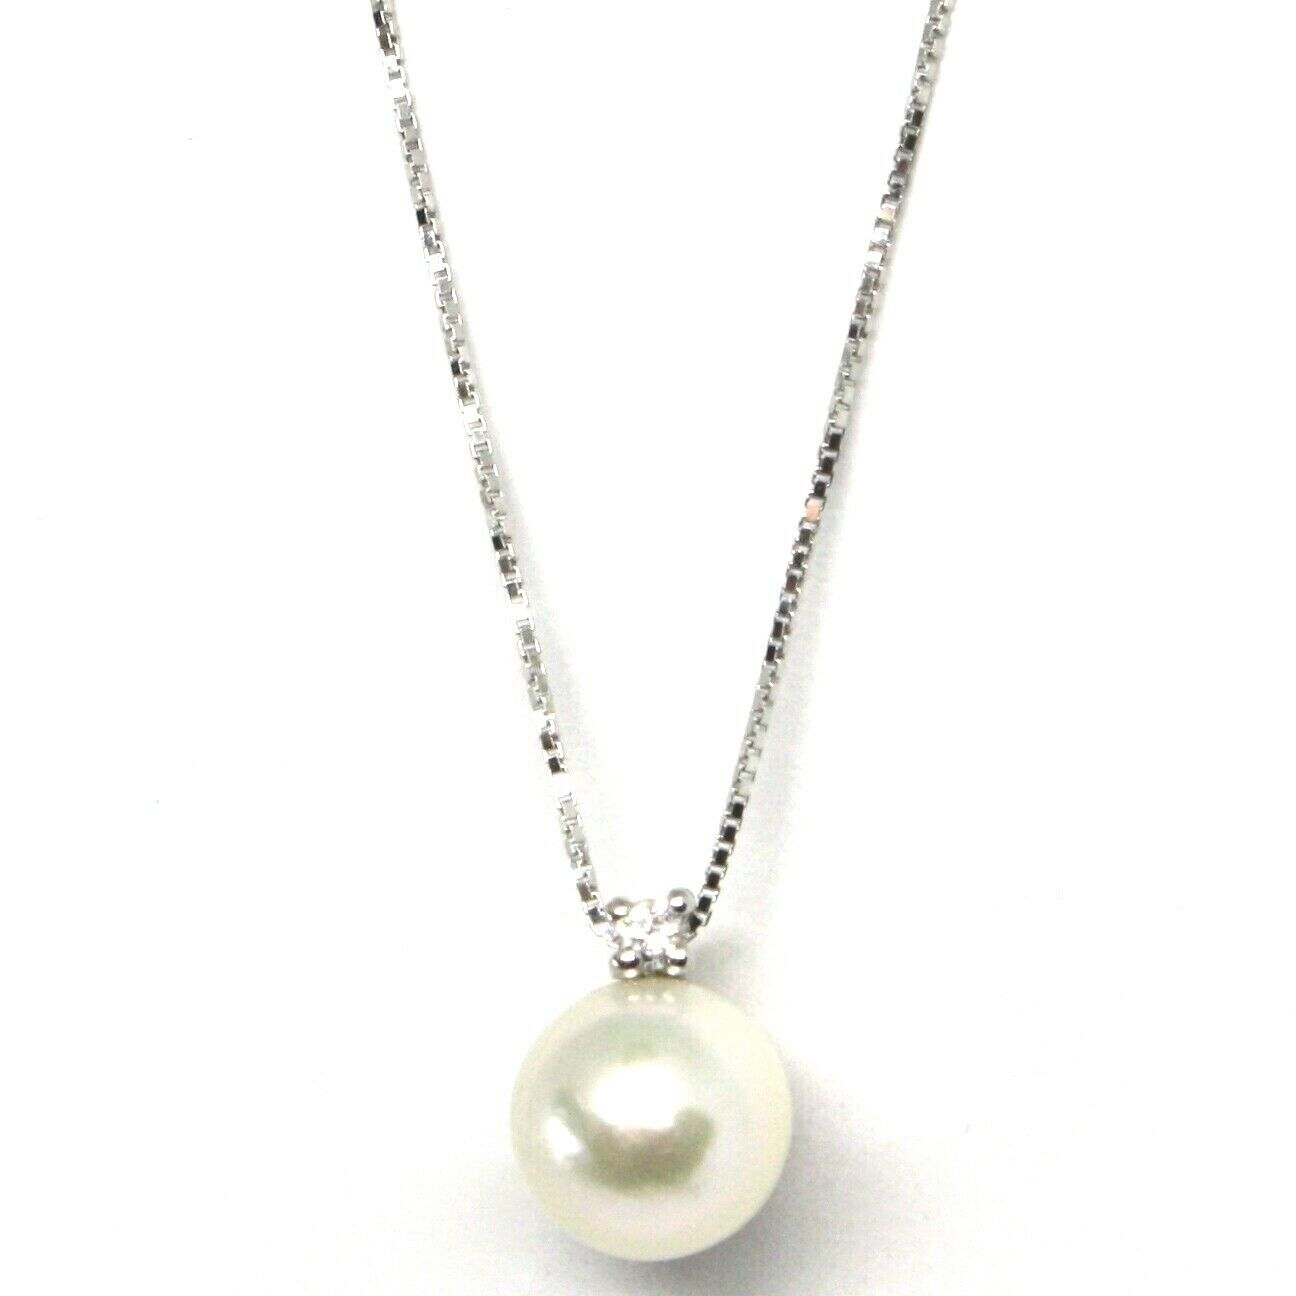 Necklace with Pendant White Gold 750 18K, Pearl Japanese Saltwater, Diamond